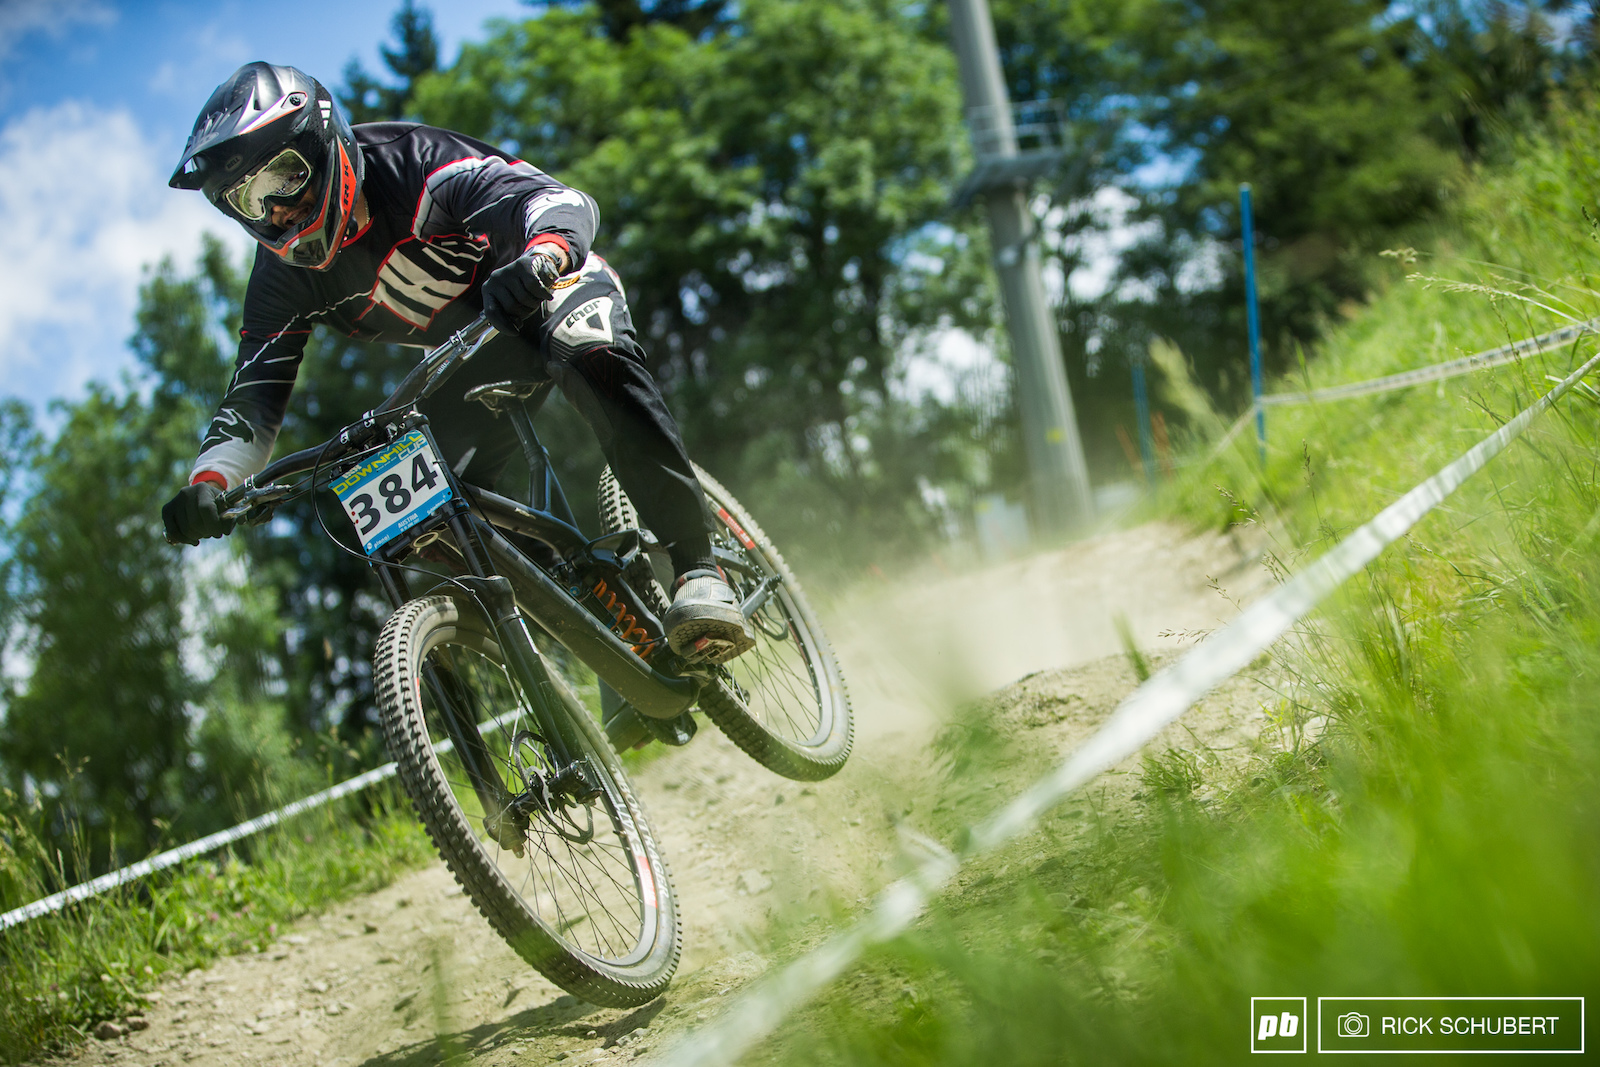 Dominik Dierich took the win in the masters category by just 0.099 seconds